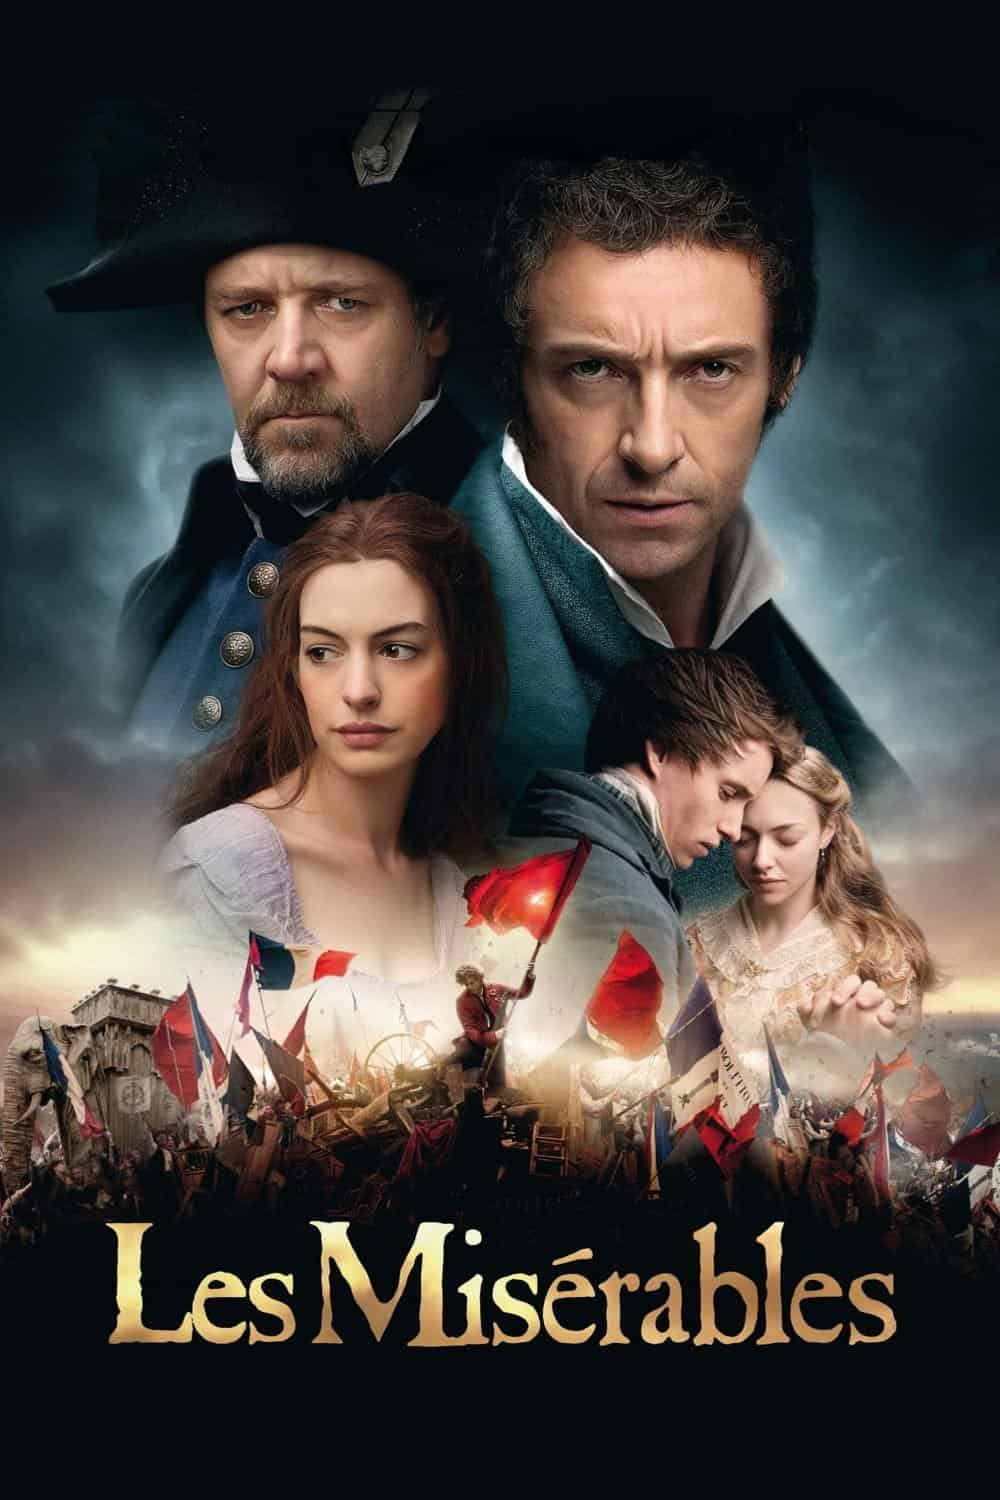 Les Miserables, 2012